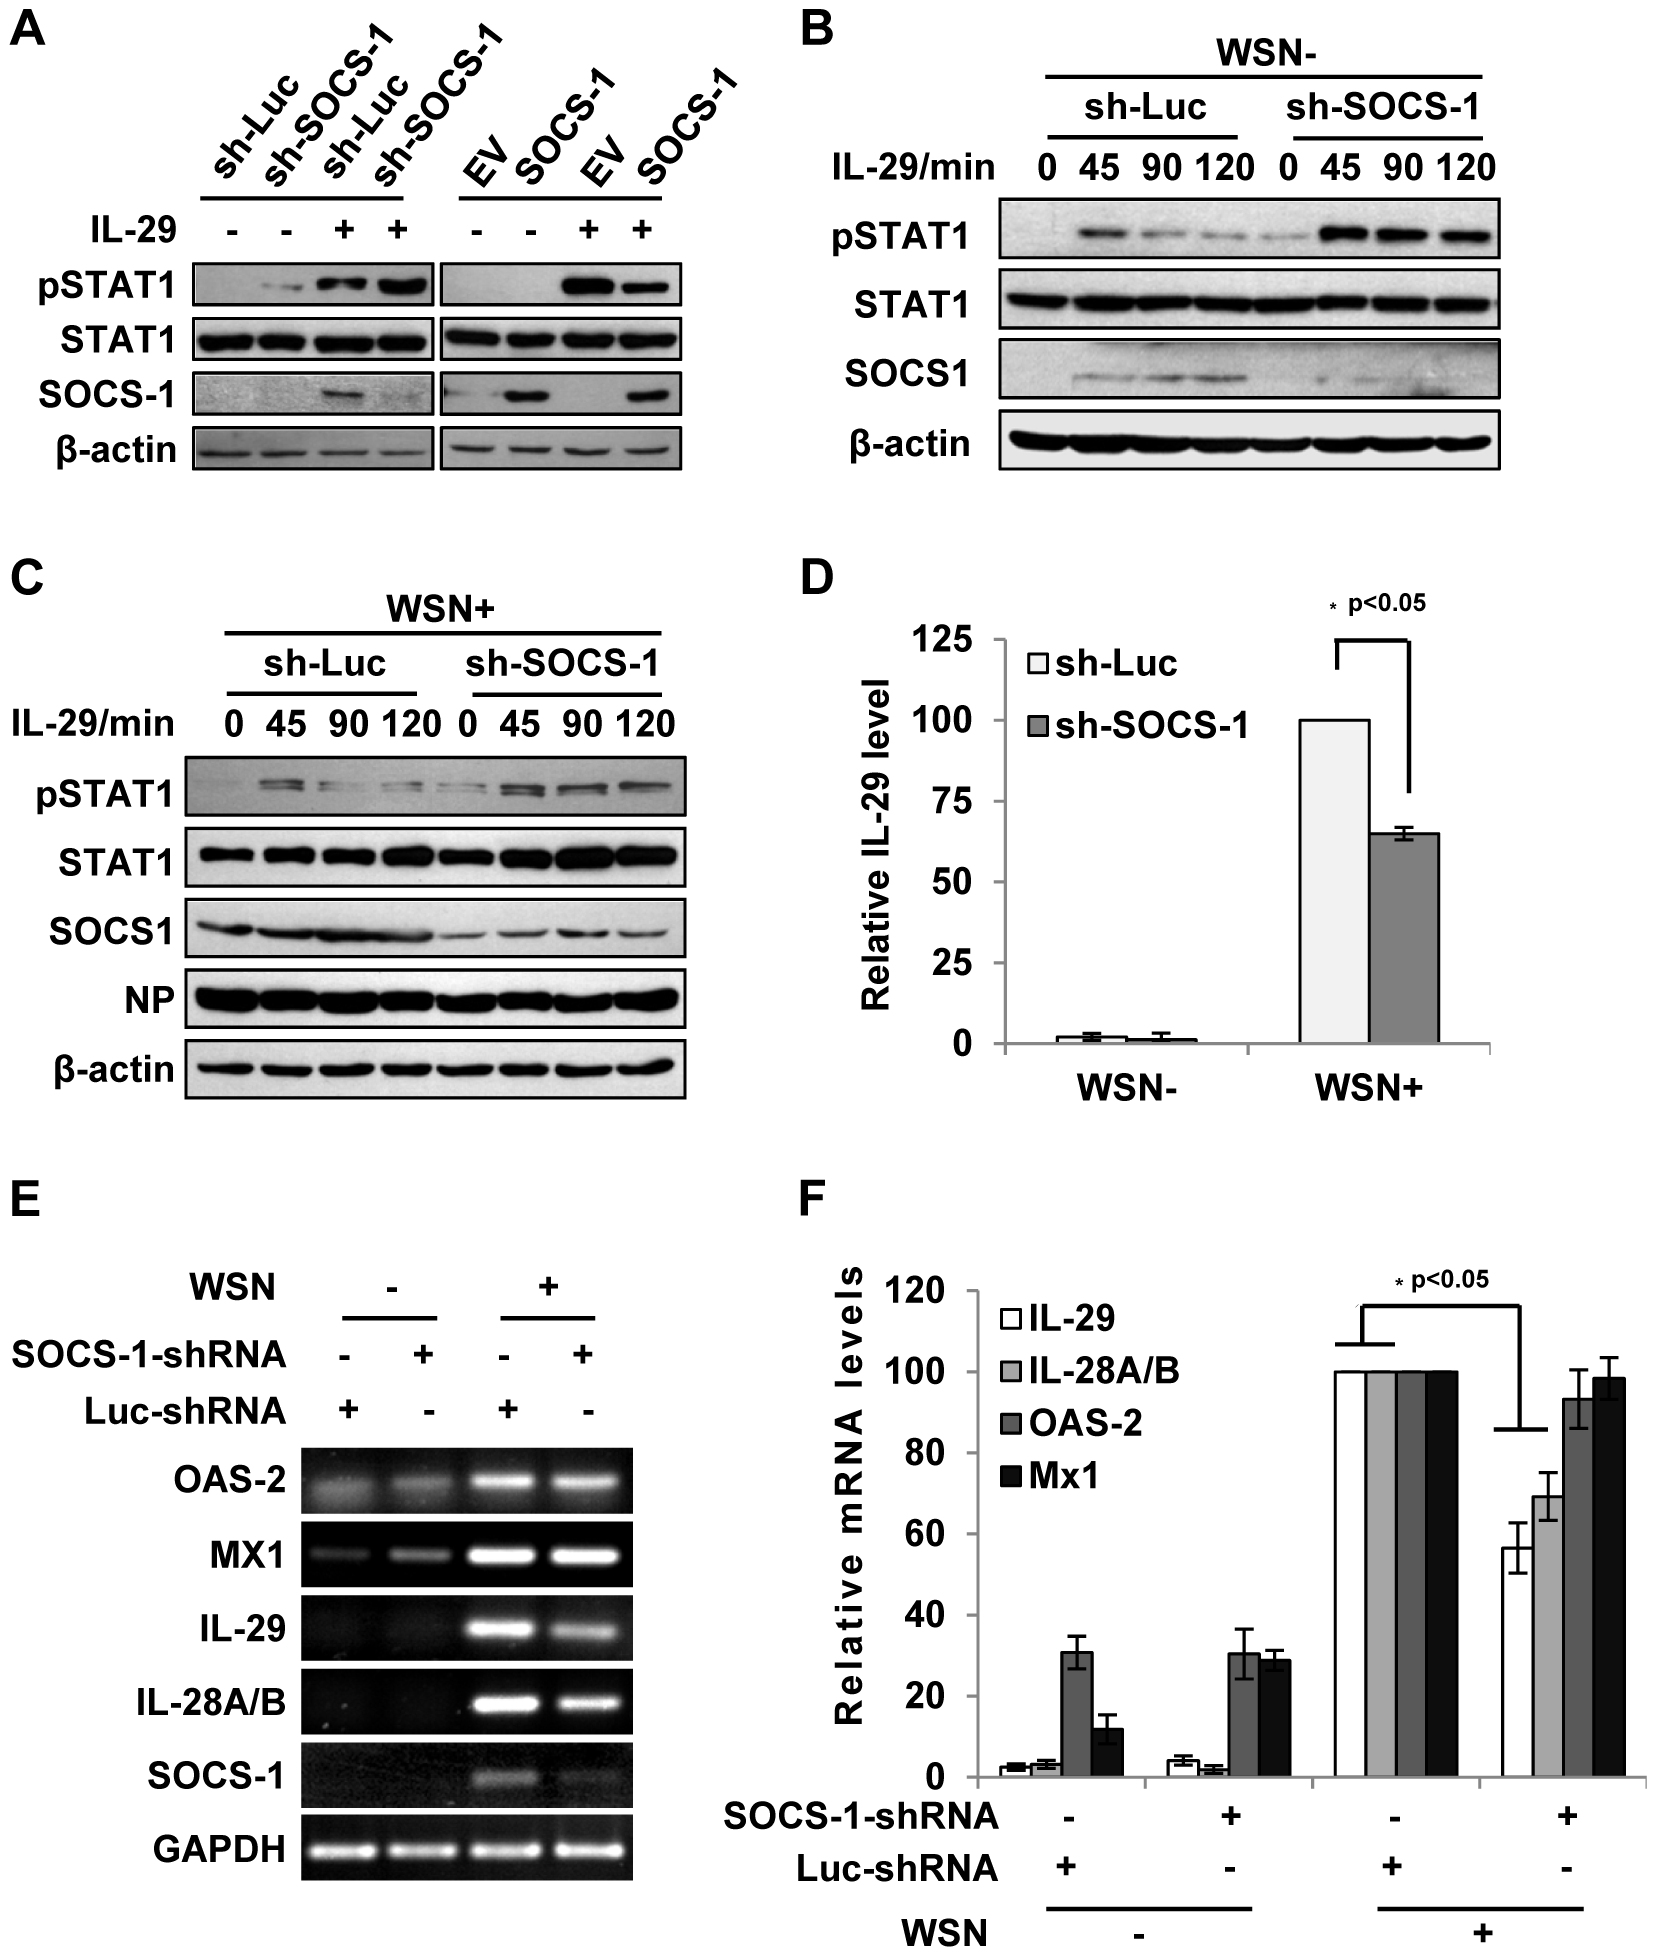 Inhibition of cytokine-mediated STAT1 activation by SOCS-1 contributes to overproduction of IFN-λ during IAV infection.